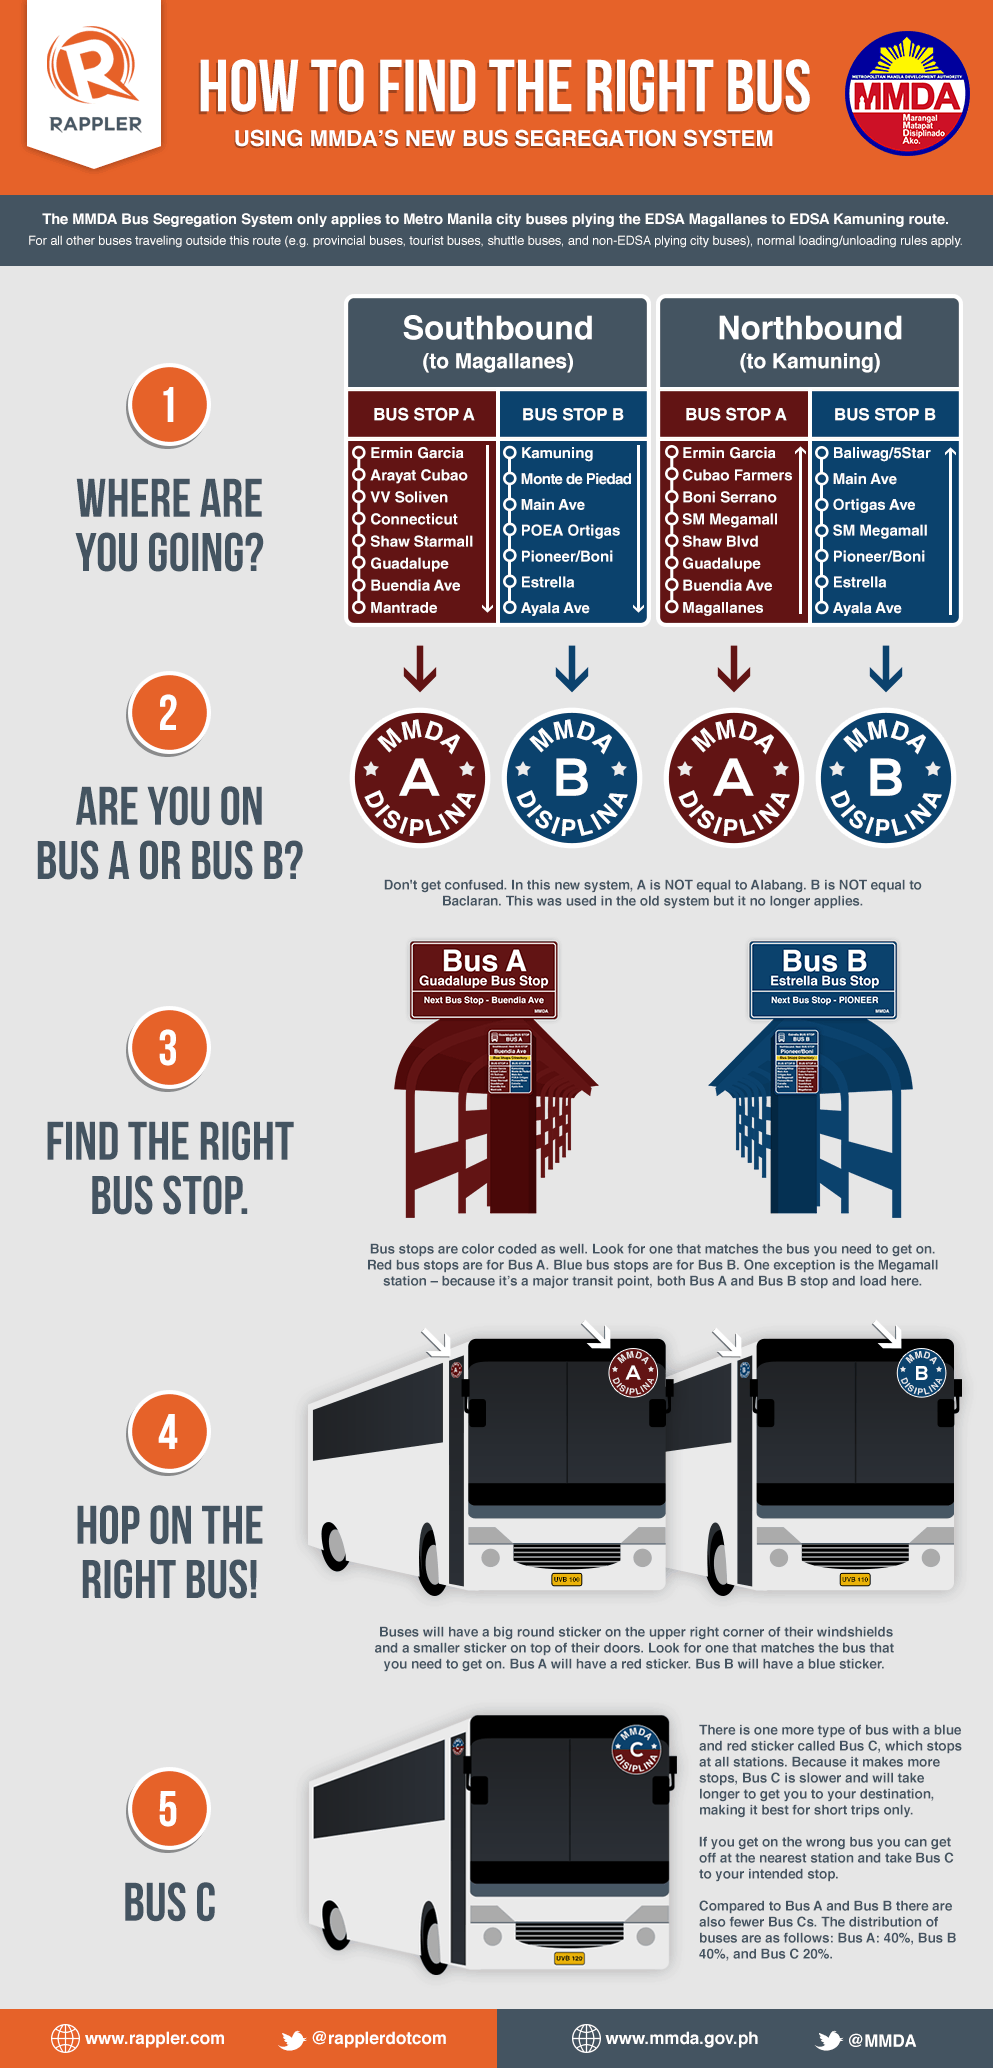 manila how to bus guide A B C mmda